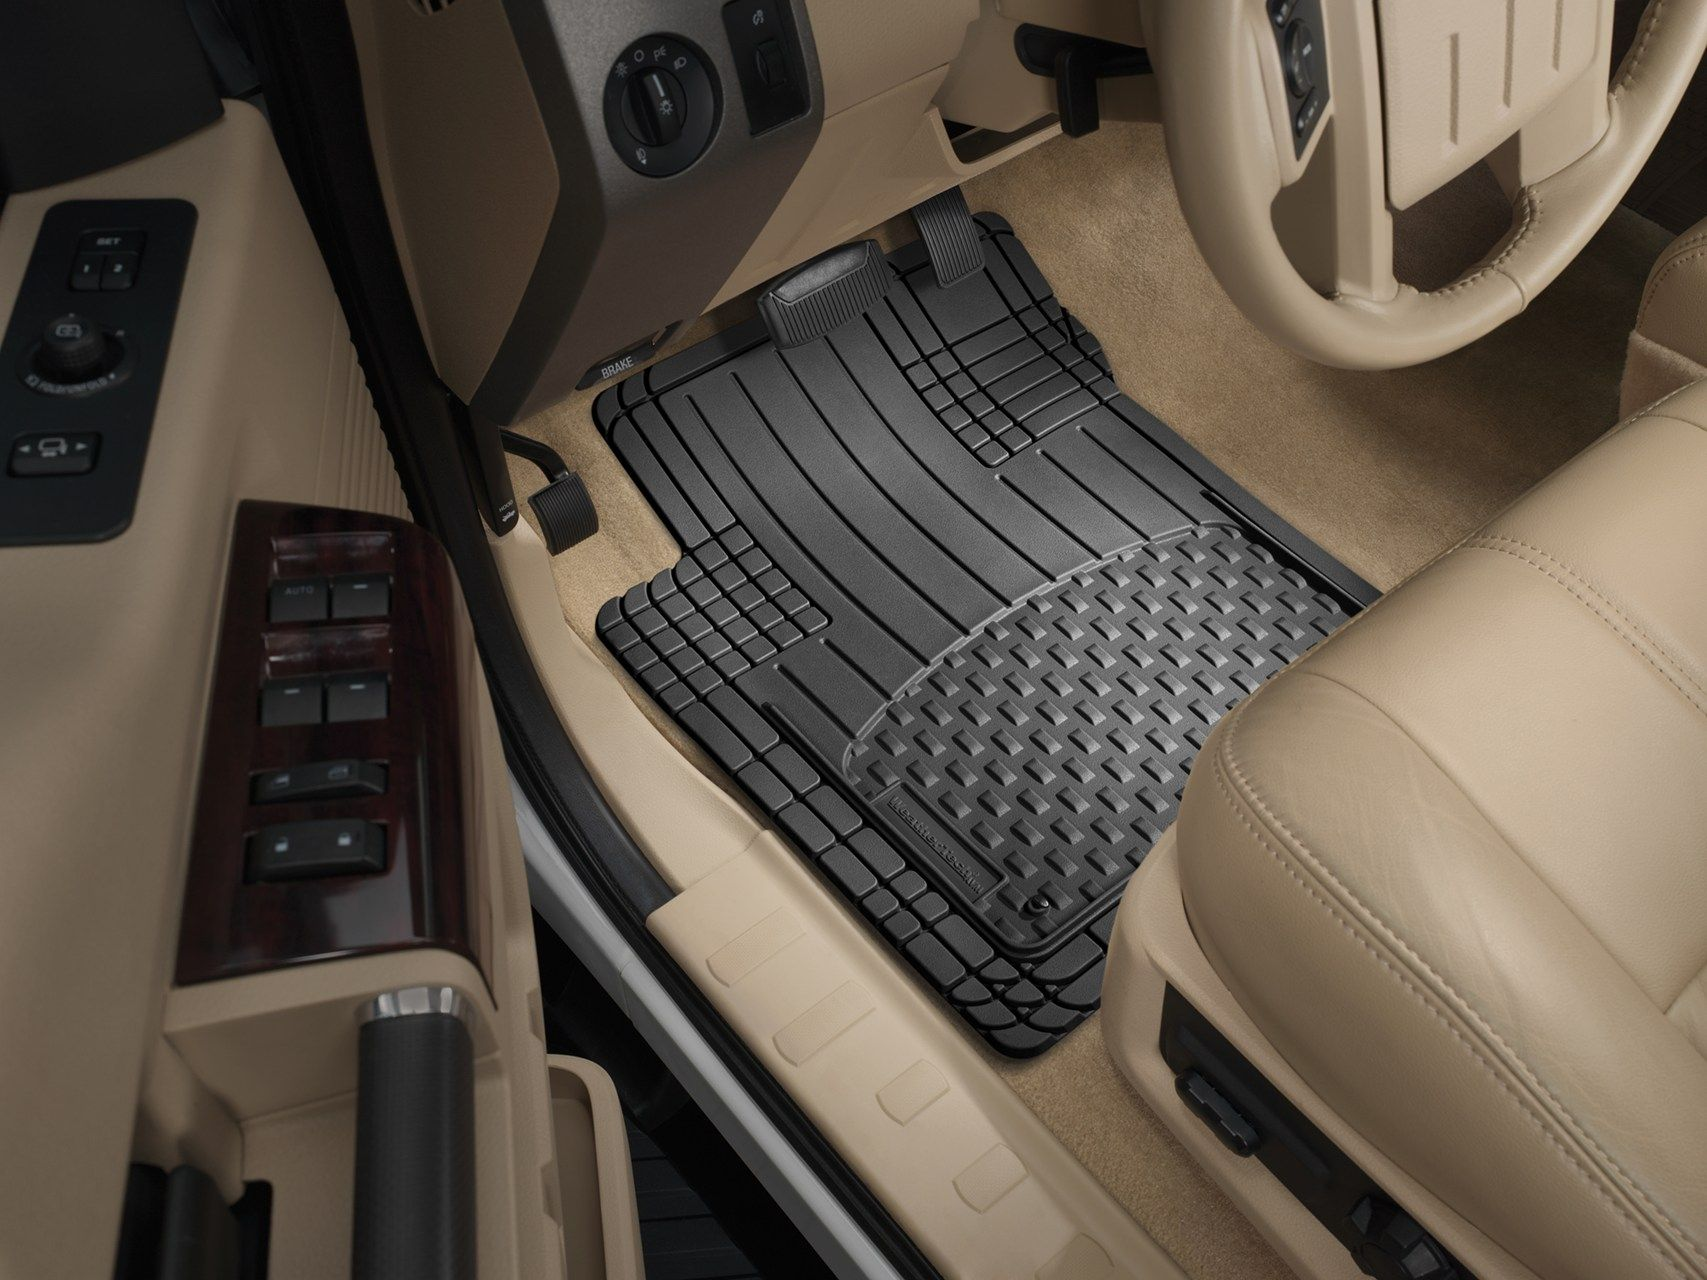 floor liners mats weathertech gen discussion vs img new page attached kb mat car husky